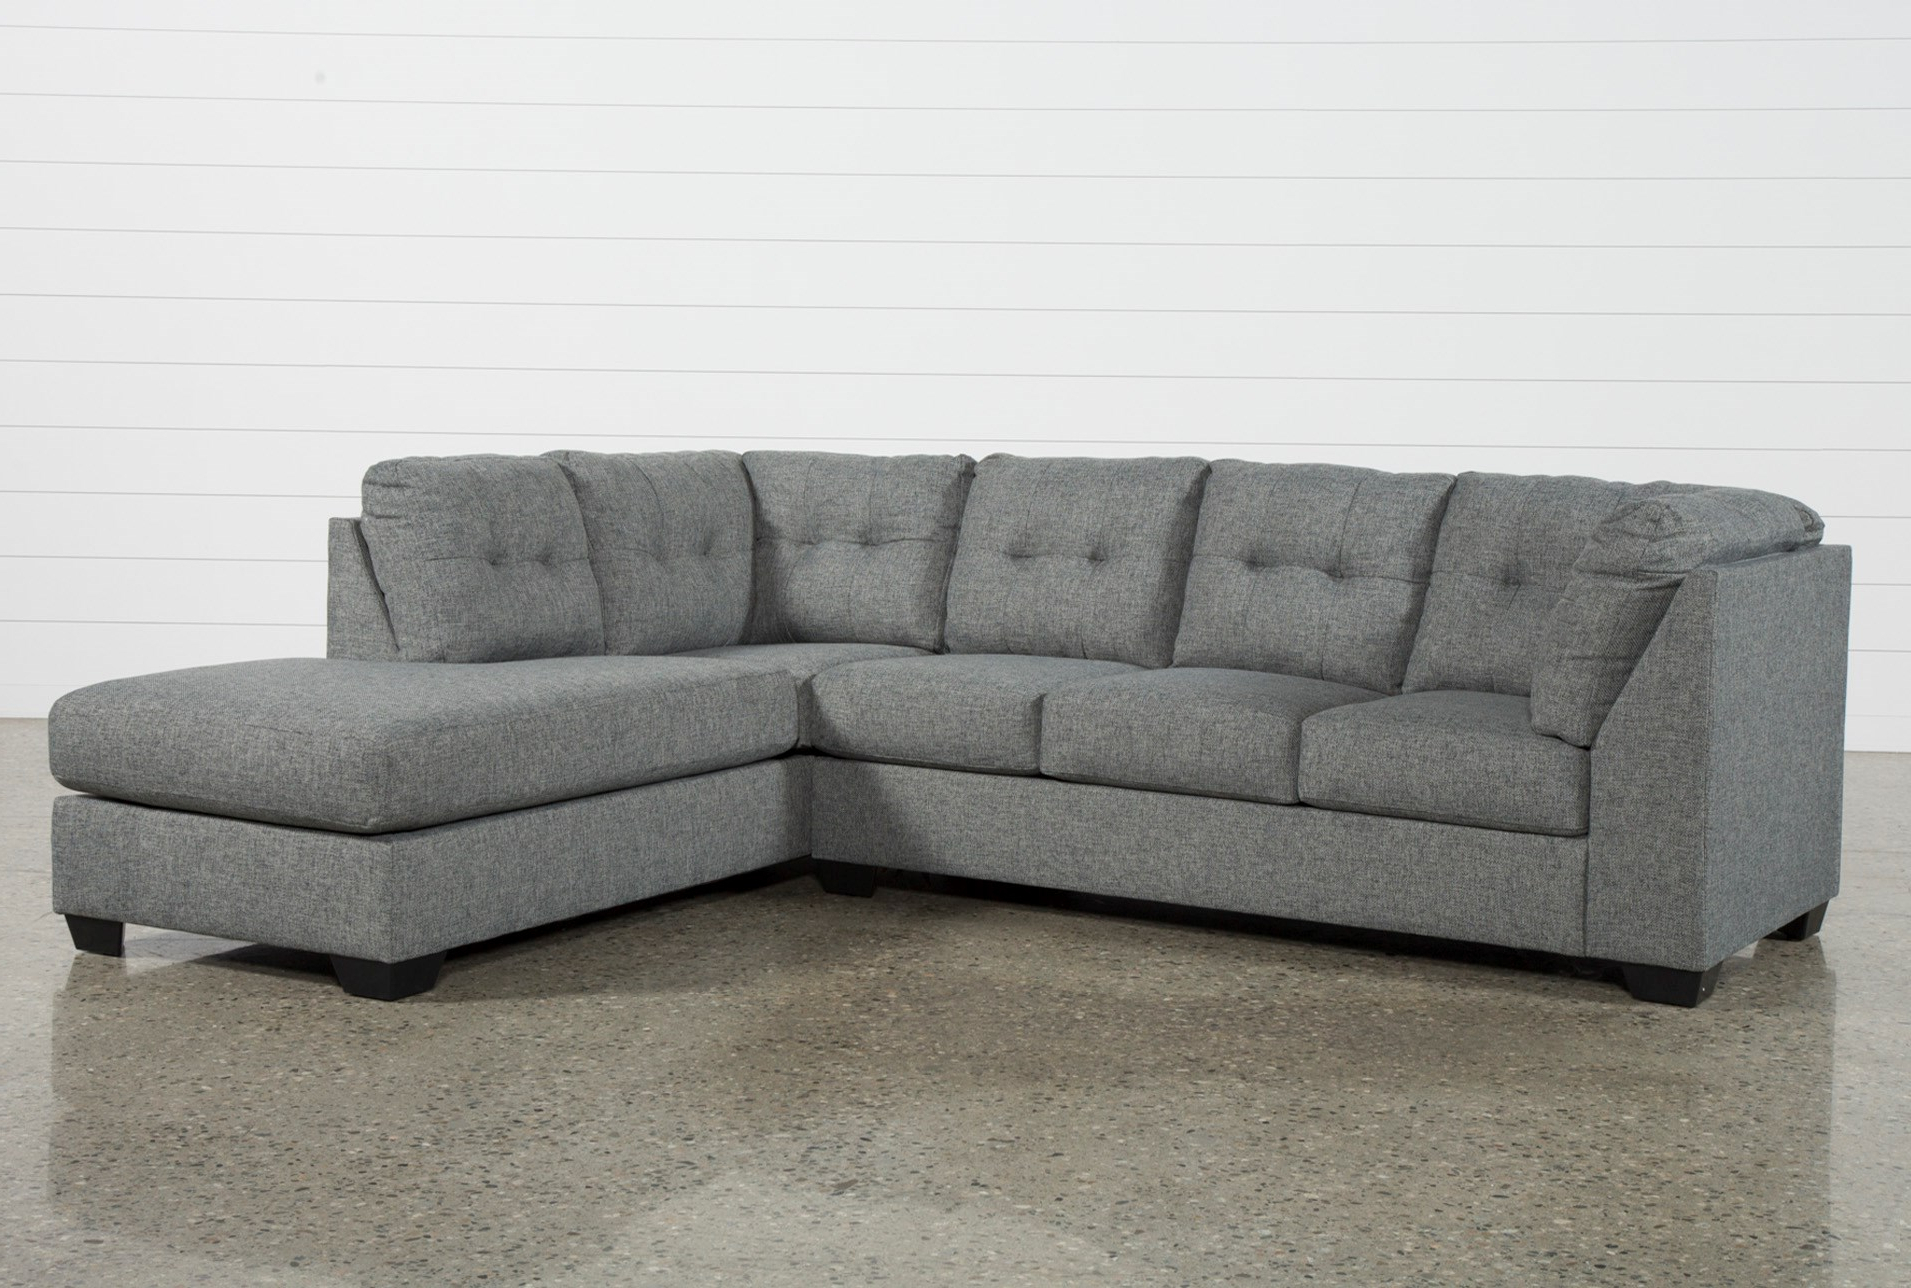 Lucy Dark Grey 2 Piece Sleeper Sectionals With Laf Chaise With Fashionable Sleeper Sectional With Chaise – Tidex (Gallery 10 of 20)